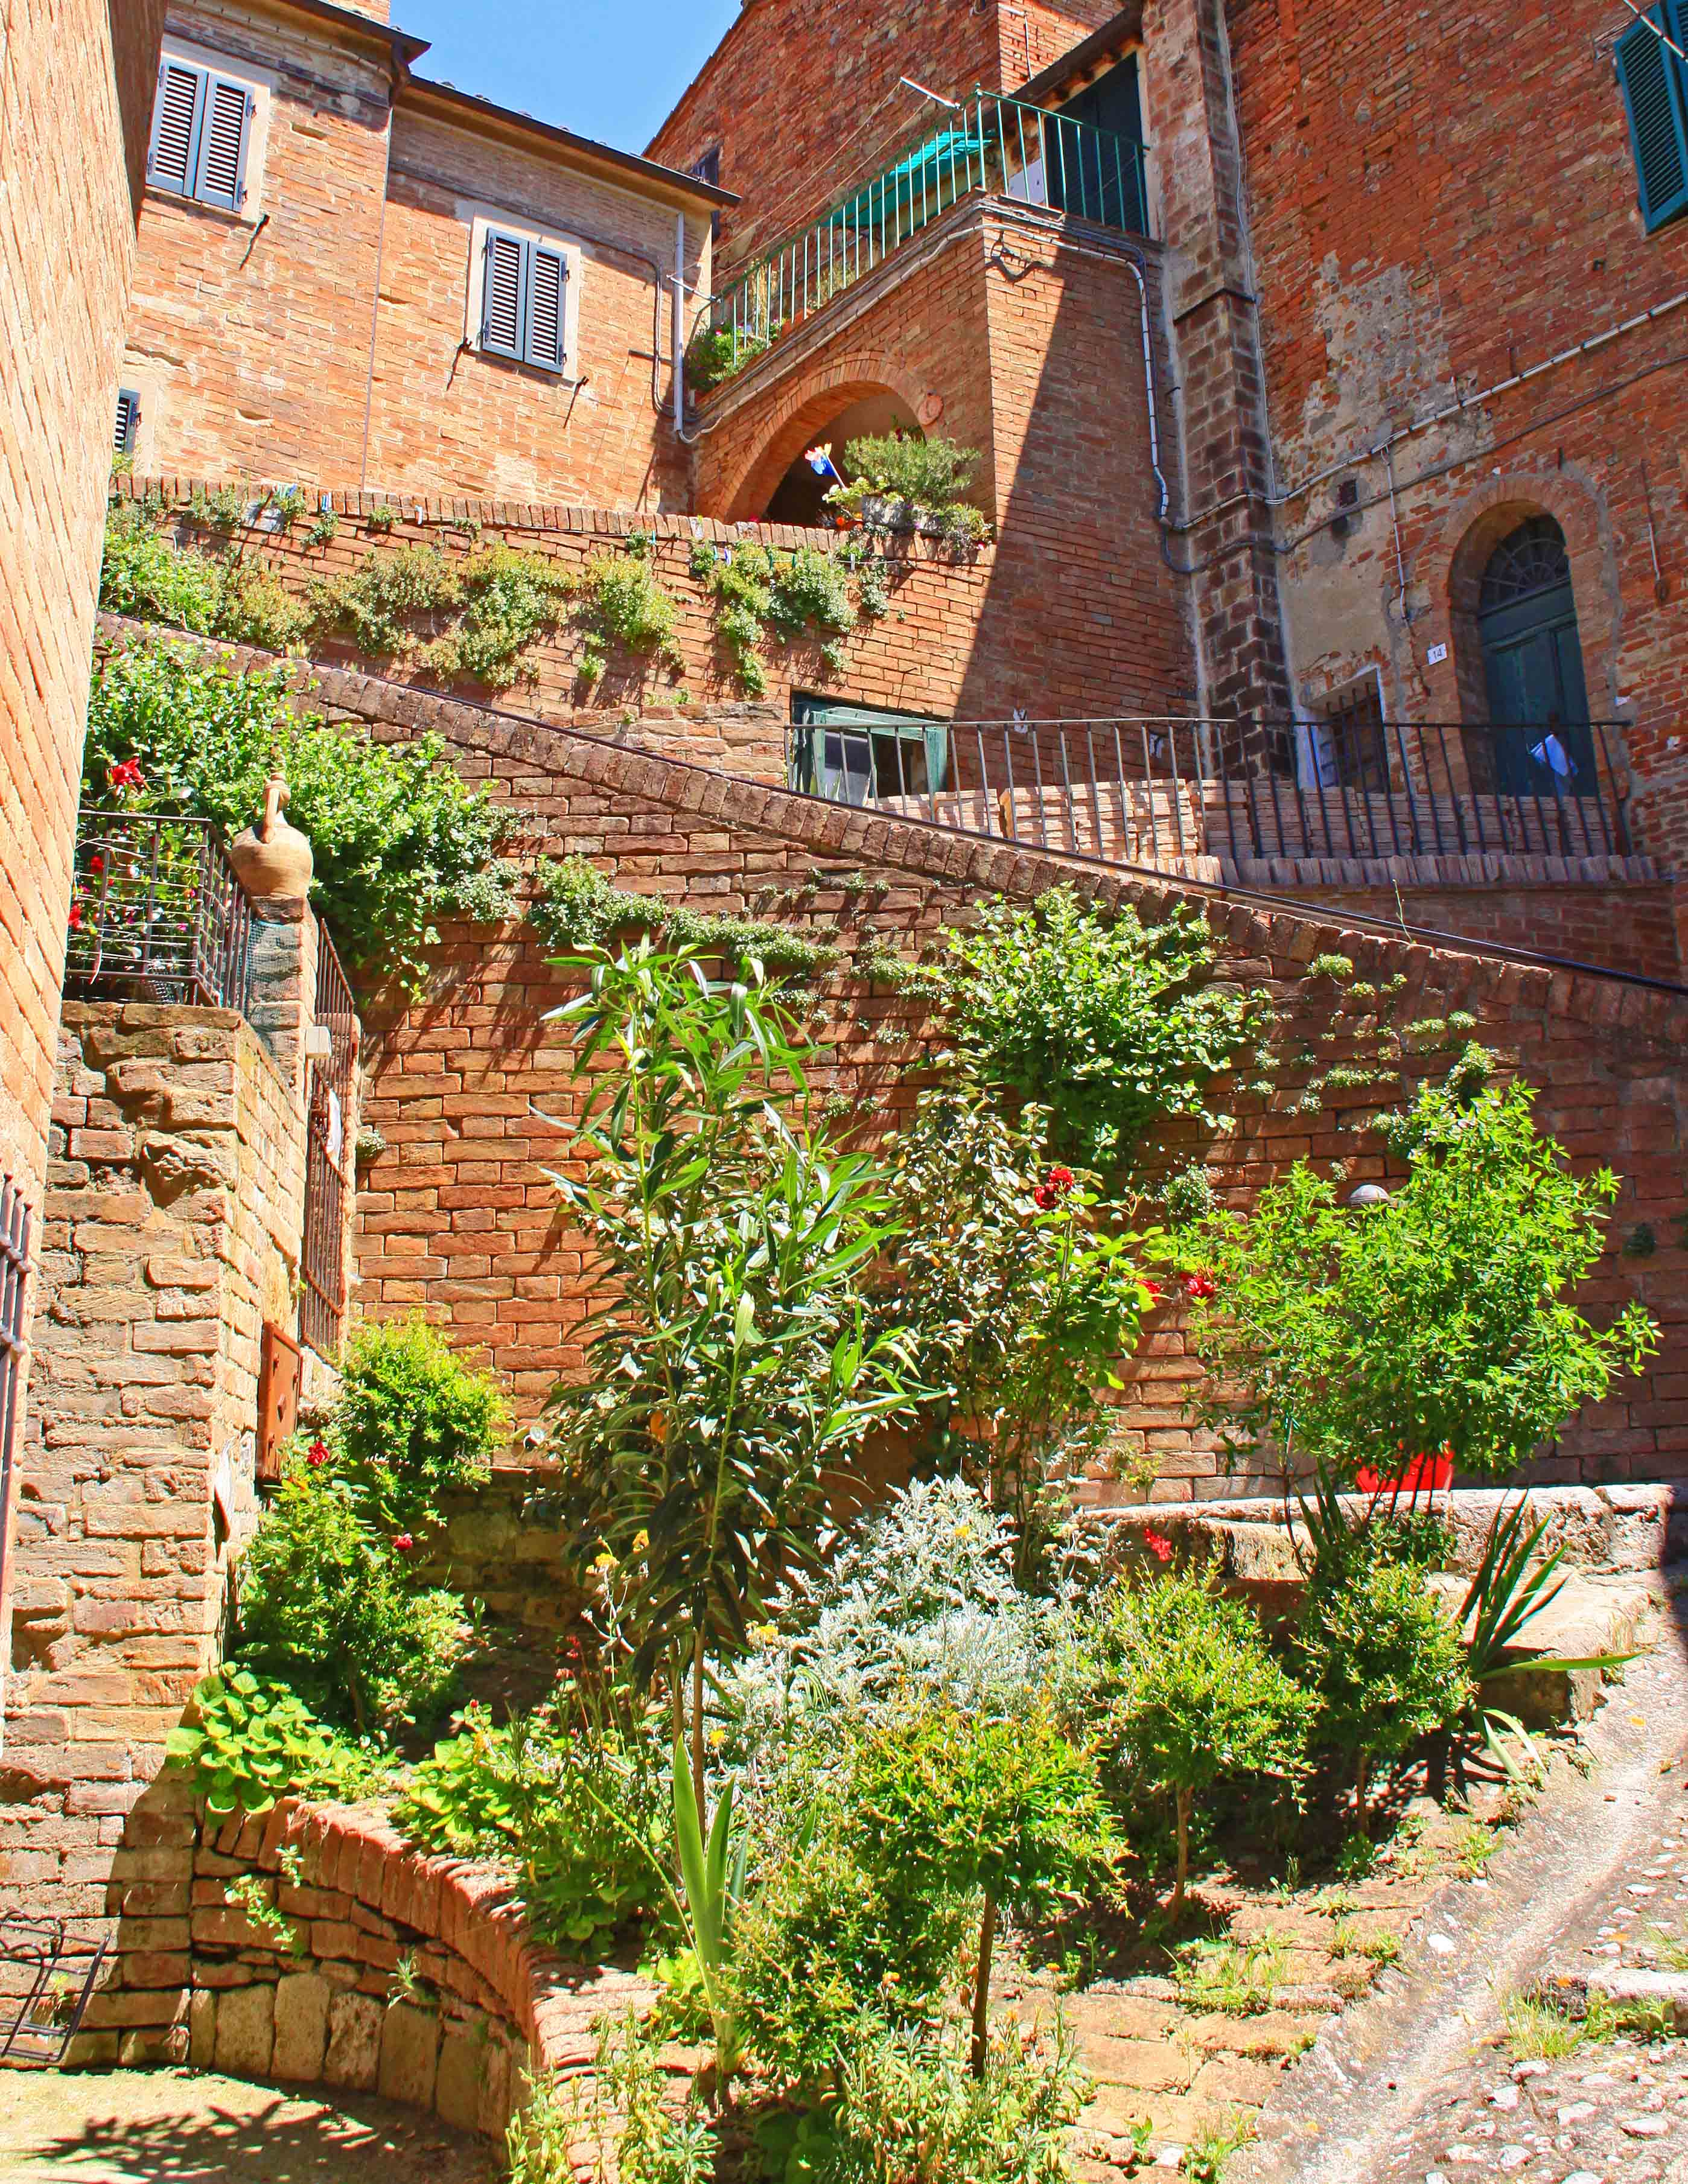 Terrace Stairs - Chiusure, Italy